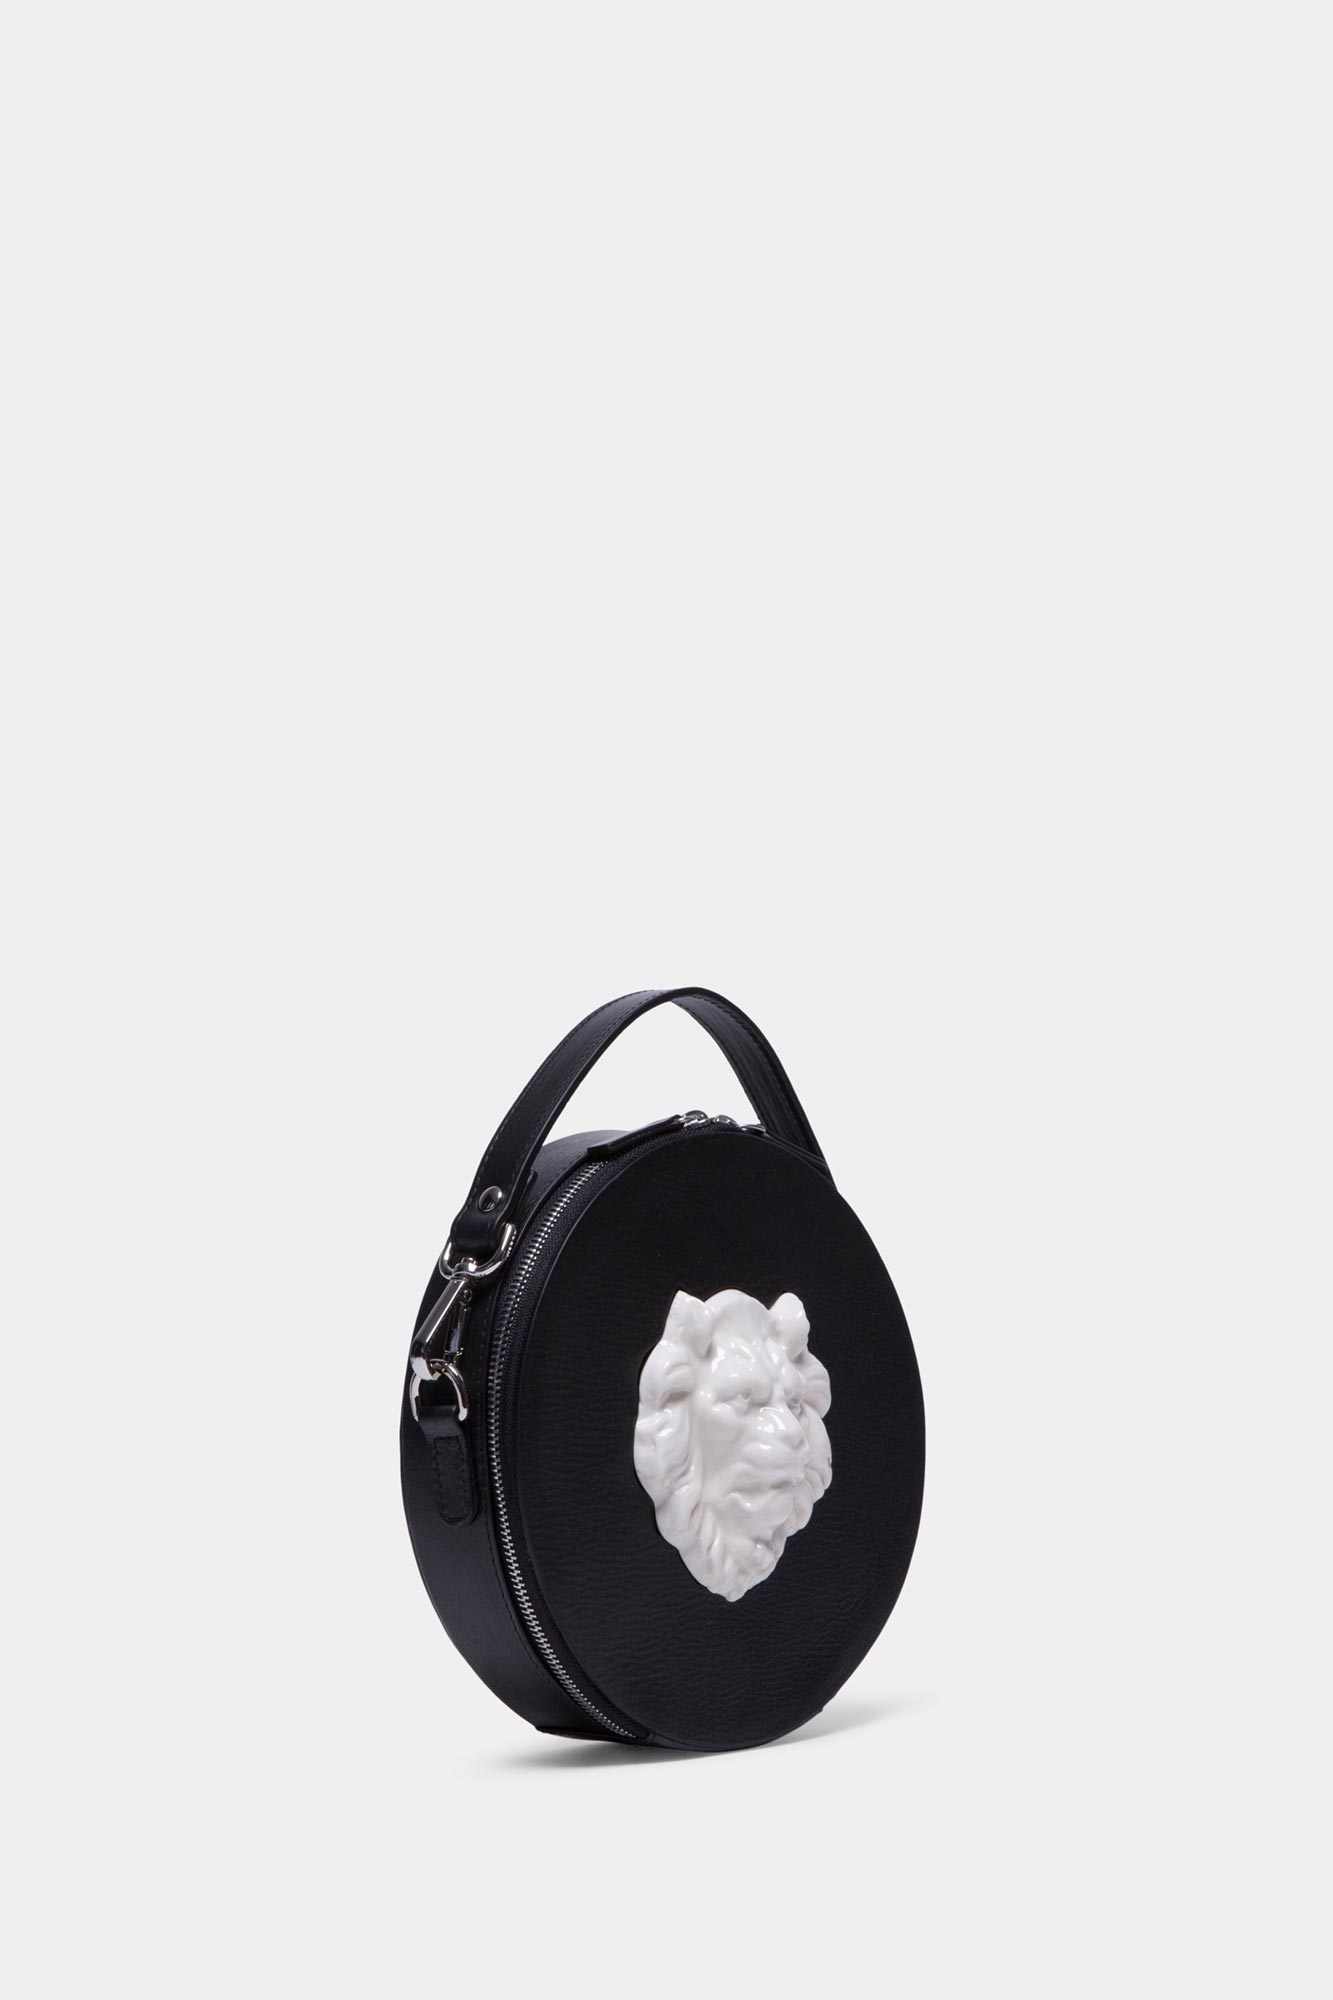 Round Lion Bag Vegetable Black